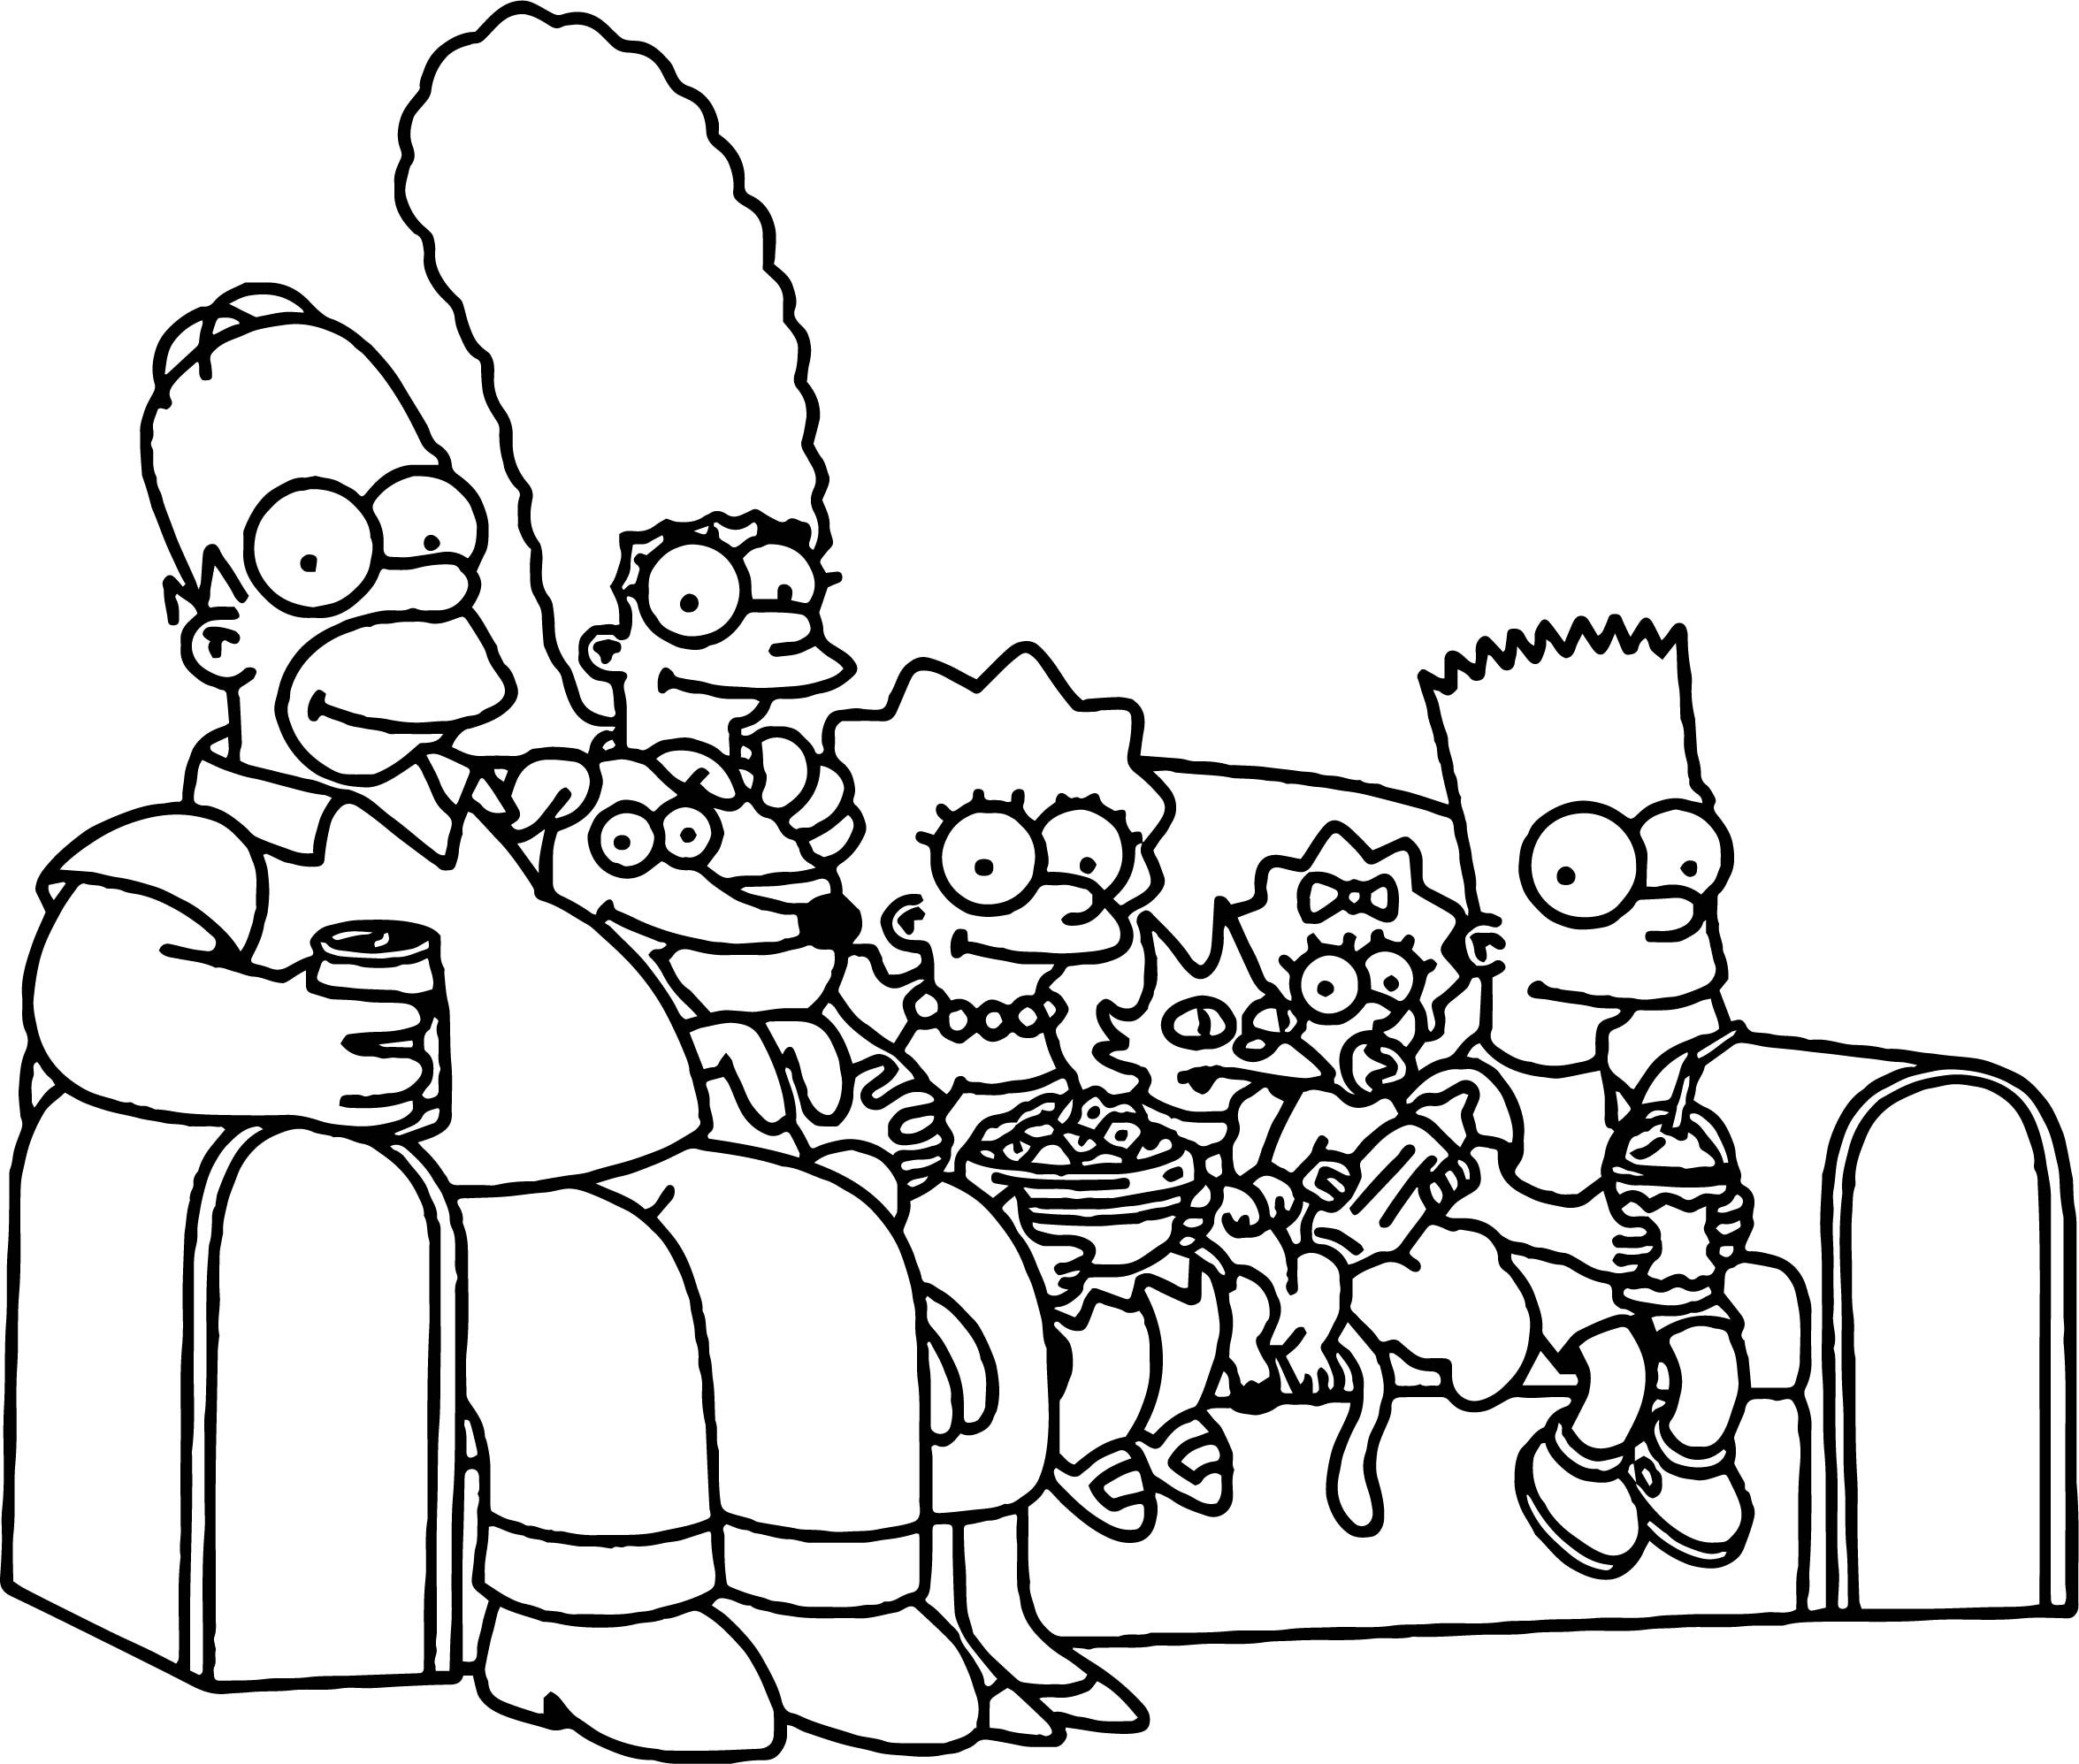 coloring simpsons simpsons free coloring pages kerra coloring simpsons